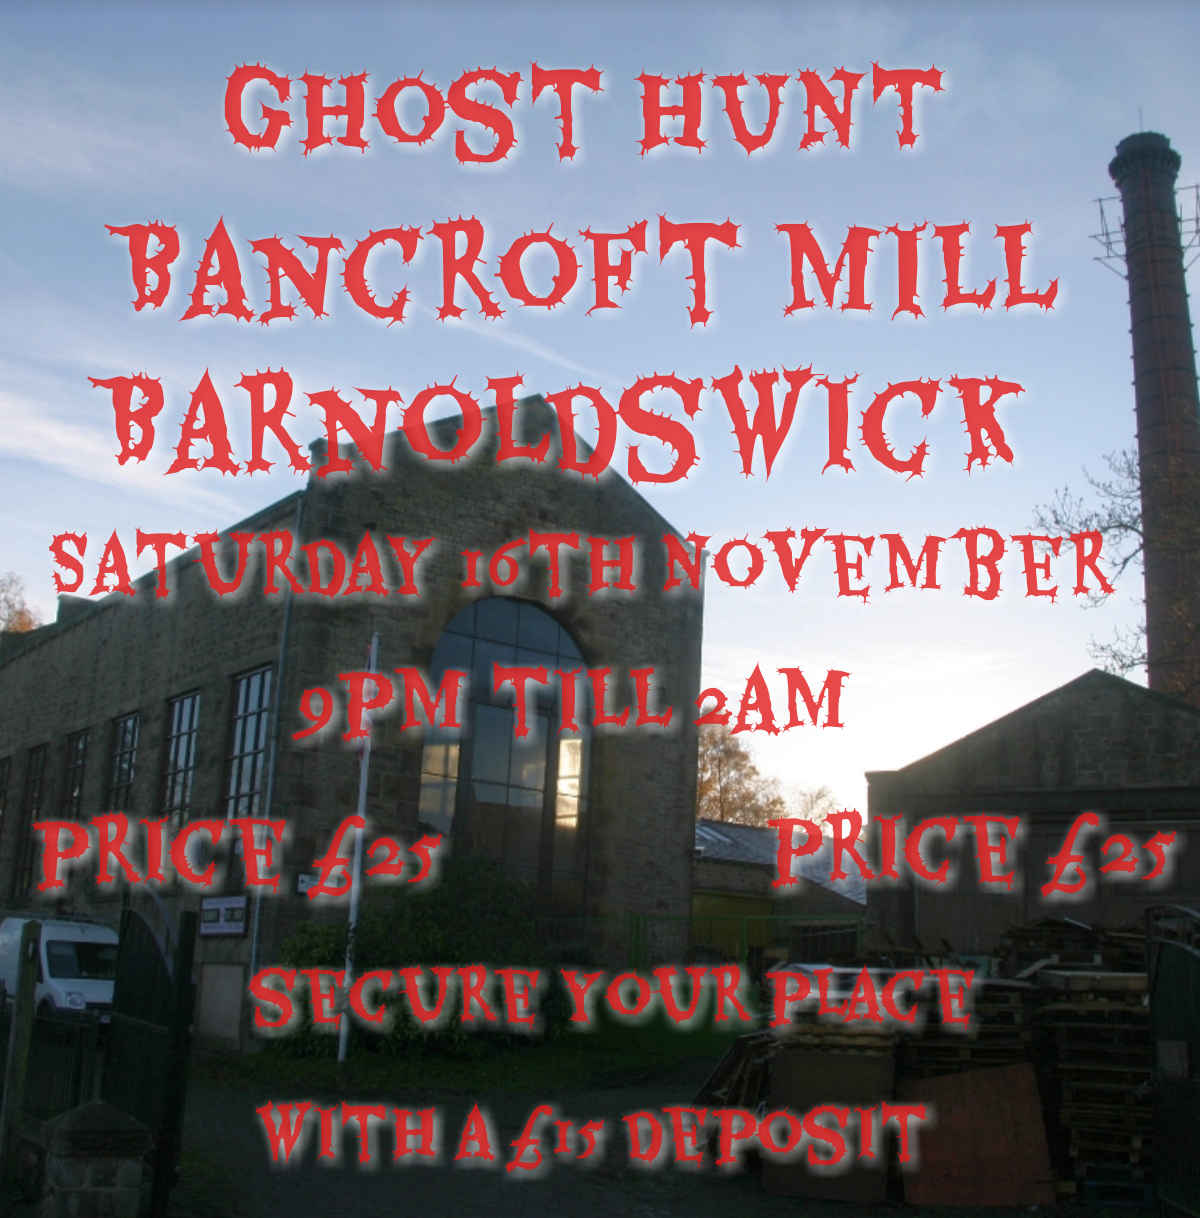 GHOST HUNT ,BANCROFT MILL IN BARNSOLDWICK, SATURDAY 16TH NOVEMBER, £25